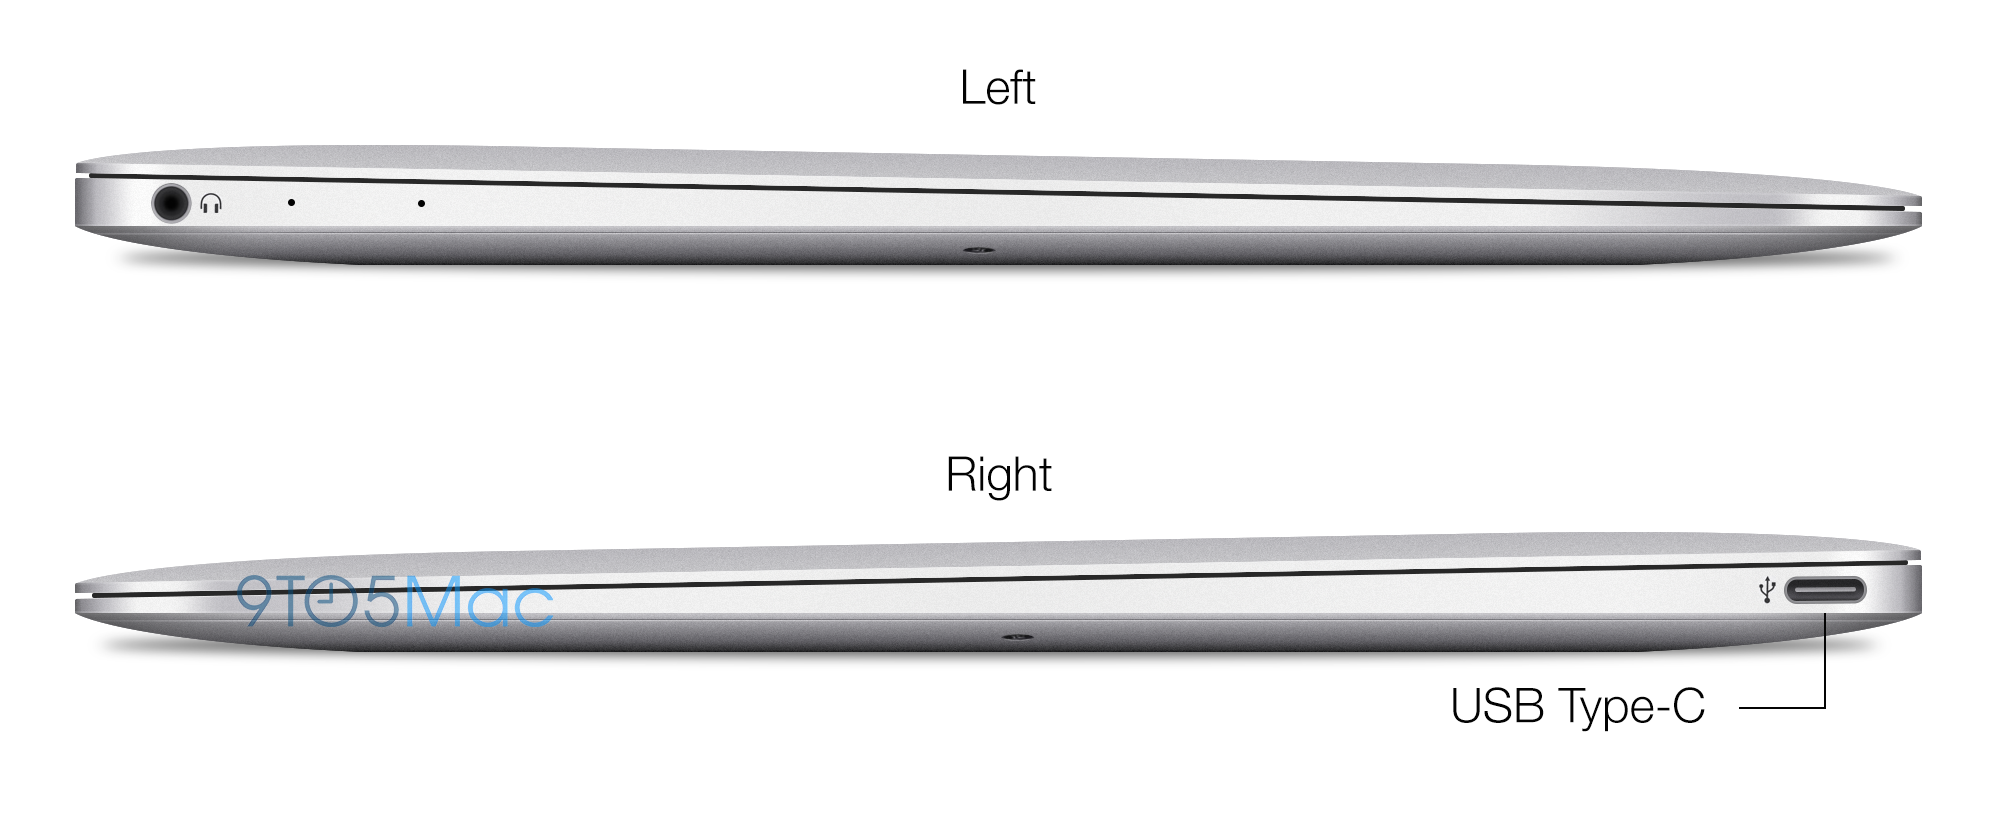 12-inch-MacBook-Air-sides-render